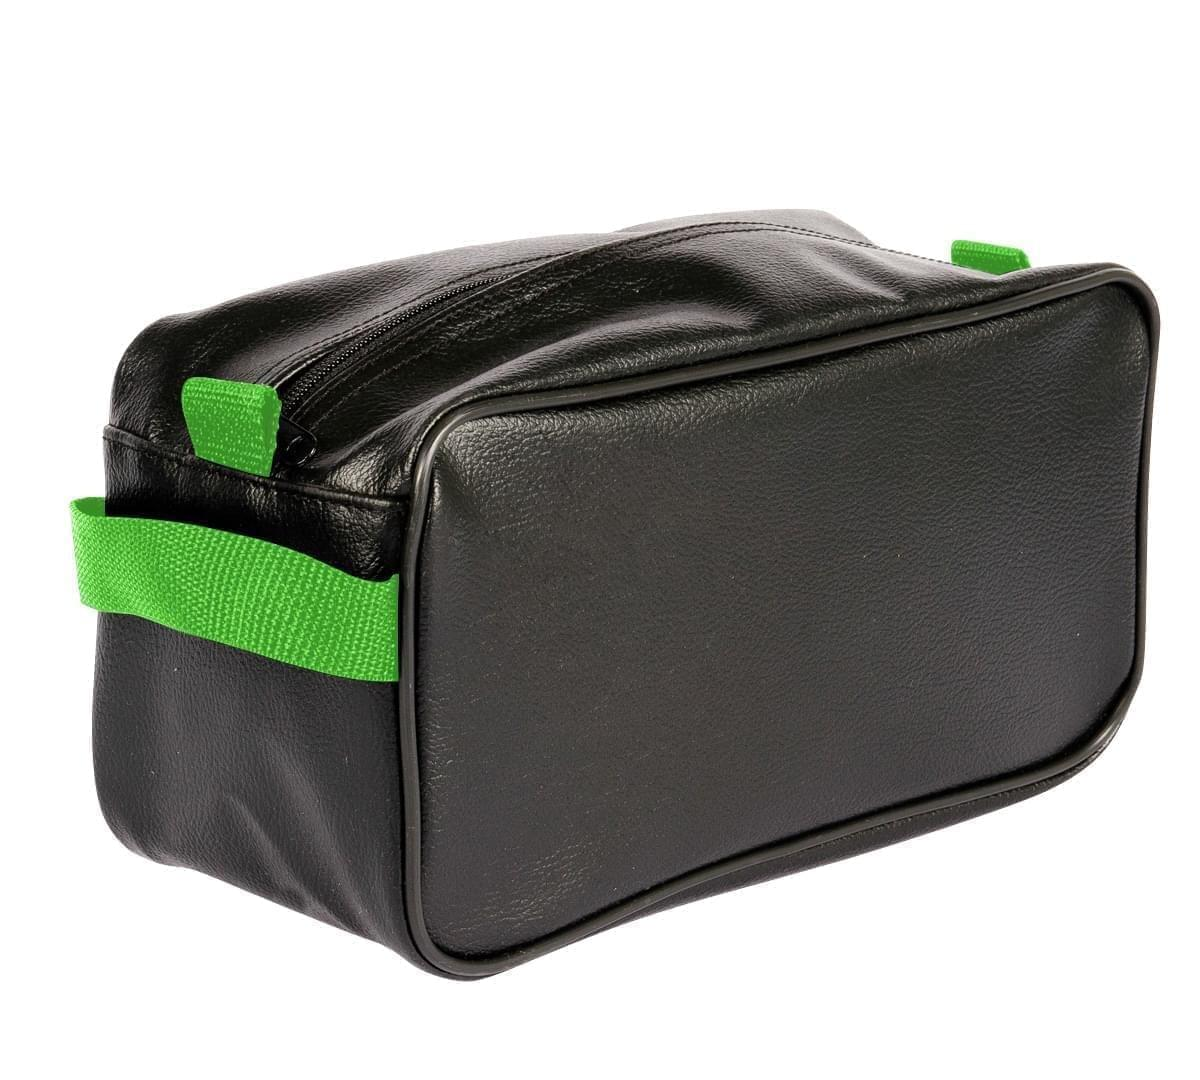 USA Made Cosmetic & Toiletry Cases, Black-Lime, 3000996-AOY